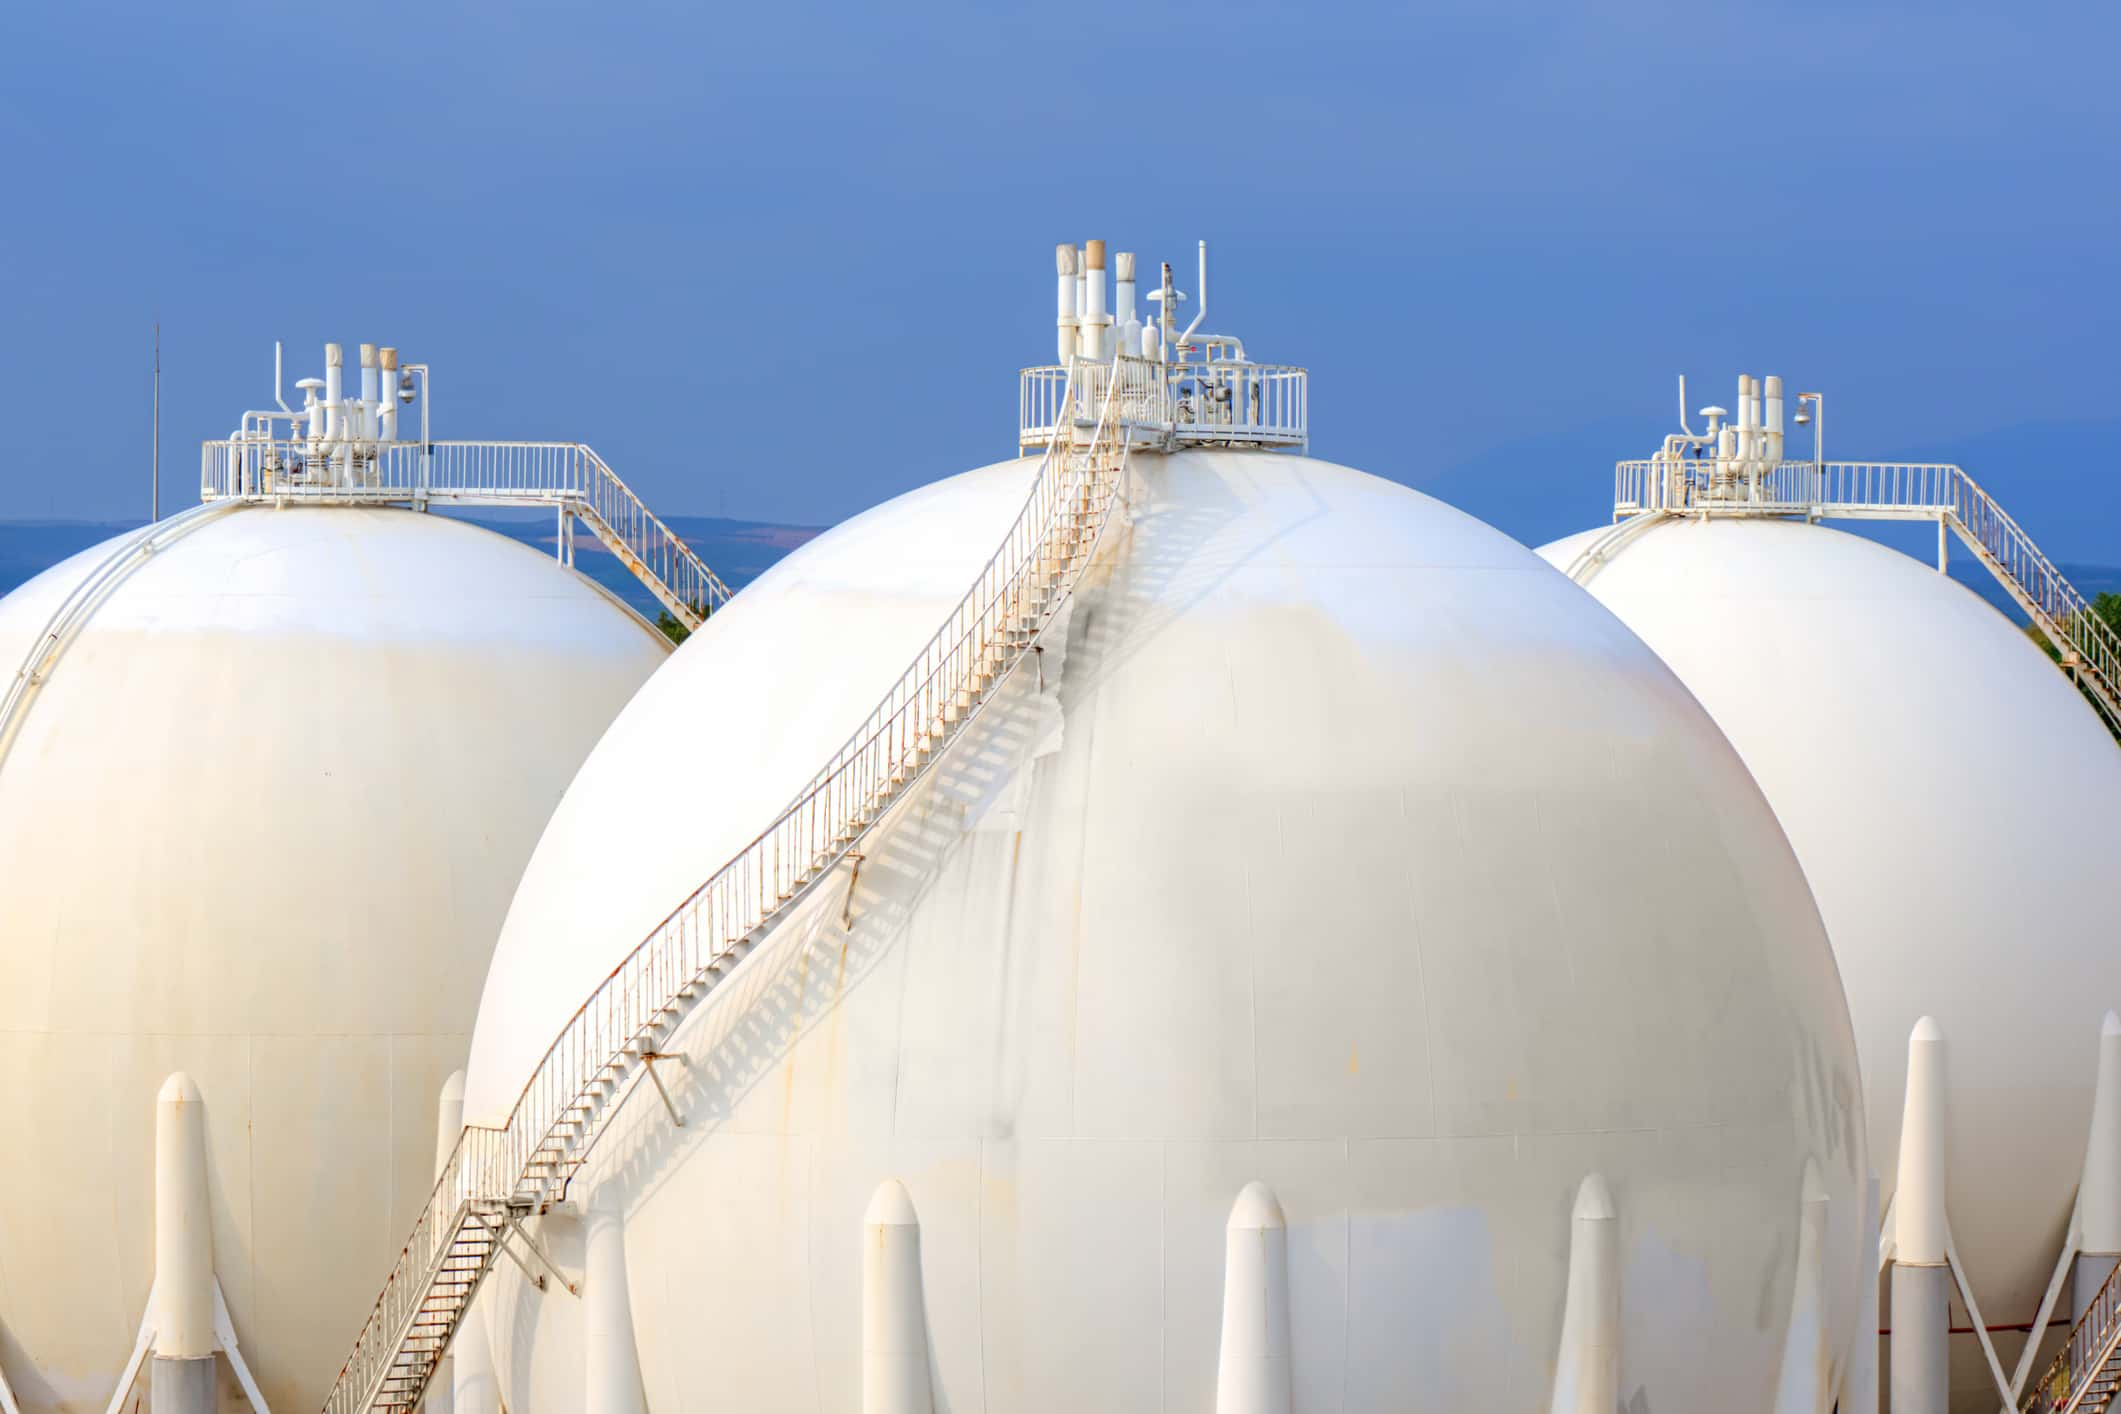 Sphere gas tanks on Petrochemical Plant